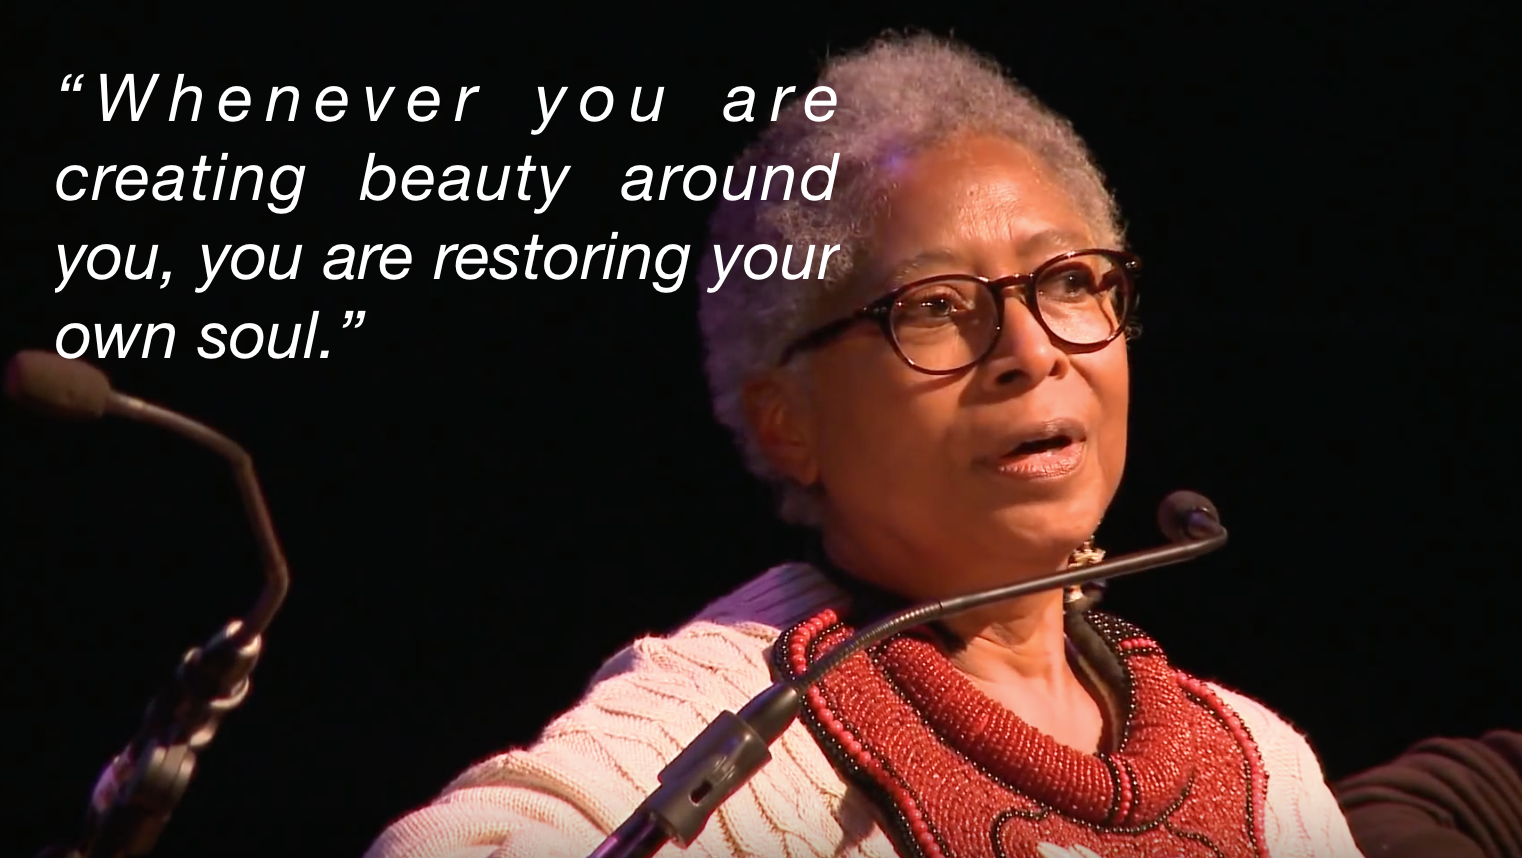 35 Alice Walker Quotes That Will Inspire You To Change The World | Thought  Catalog